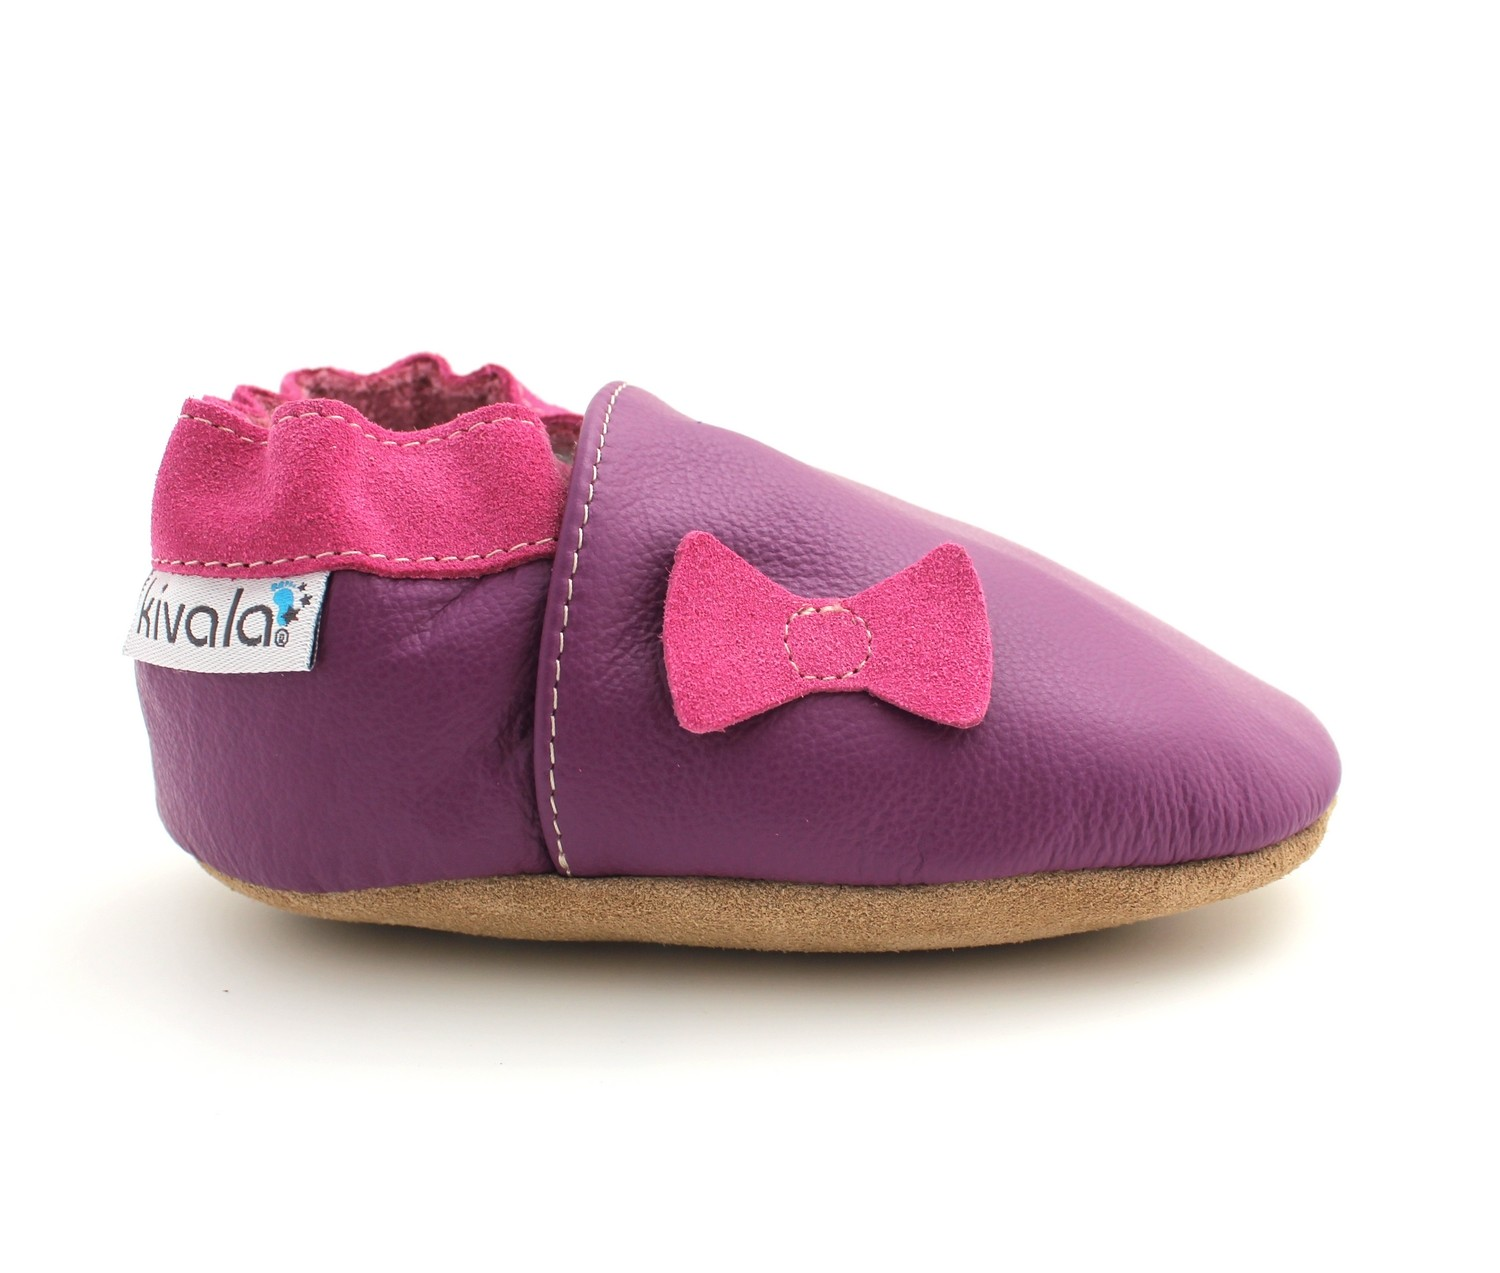 f64a3369c1b8d chaussons cuir souple noeud